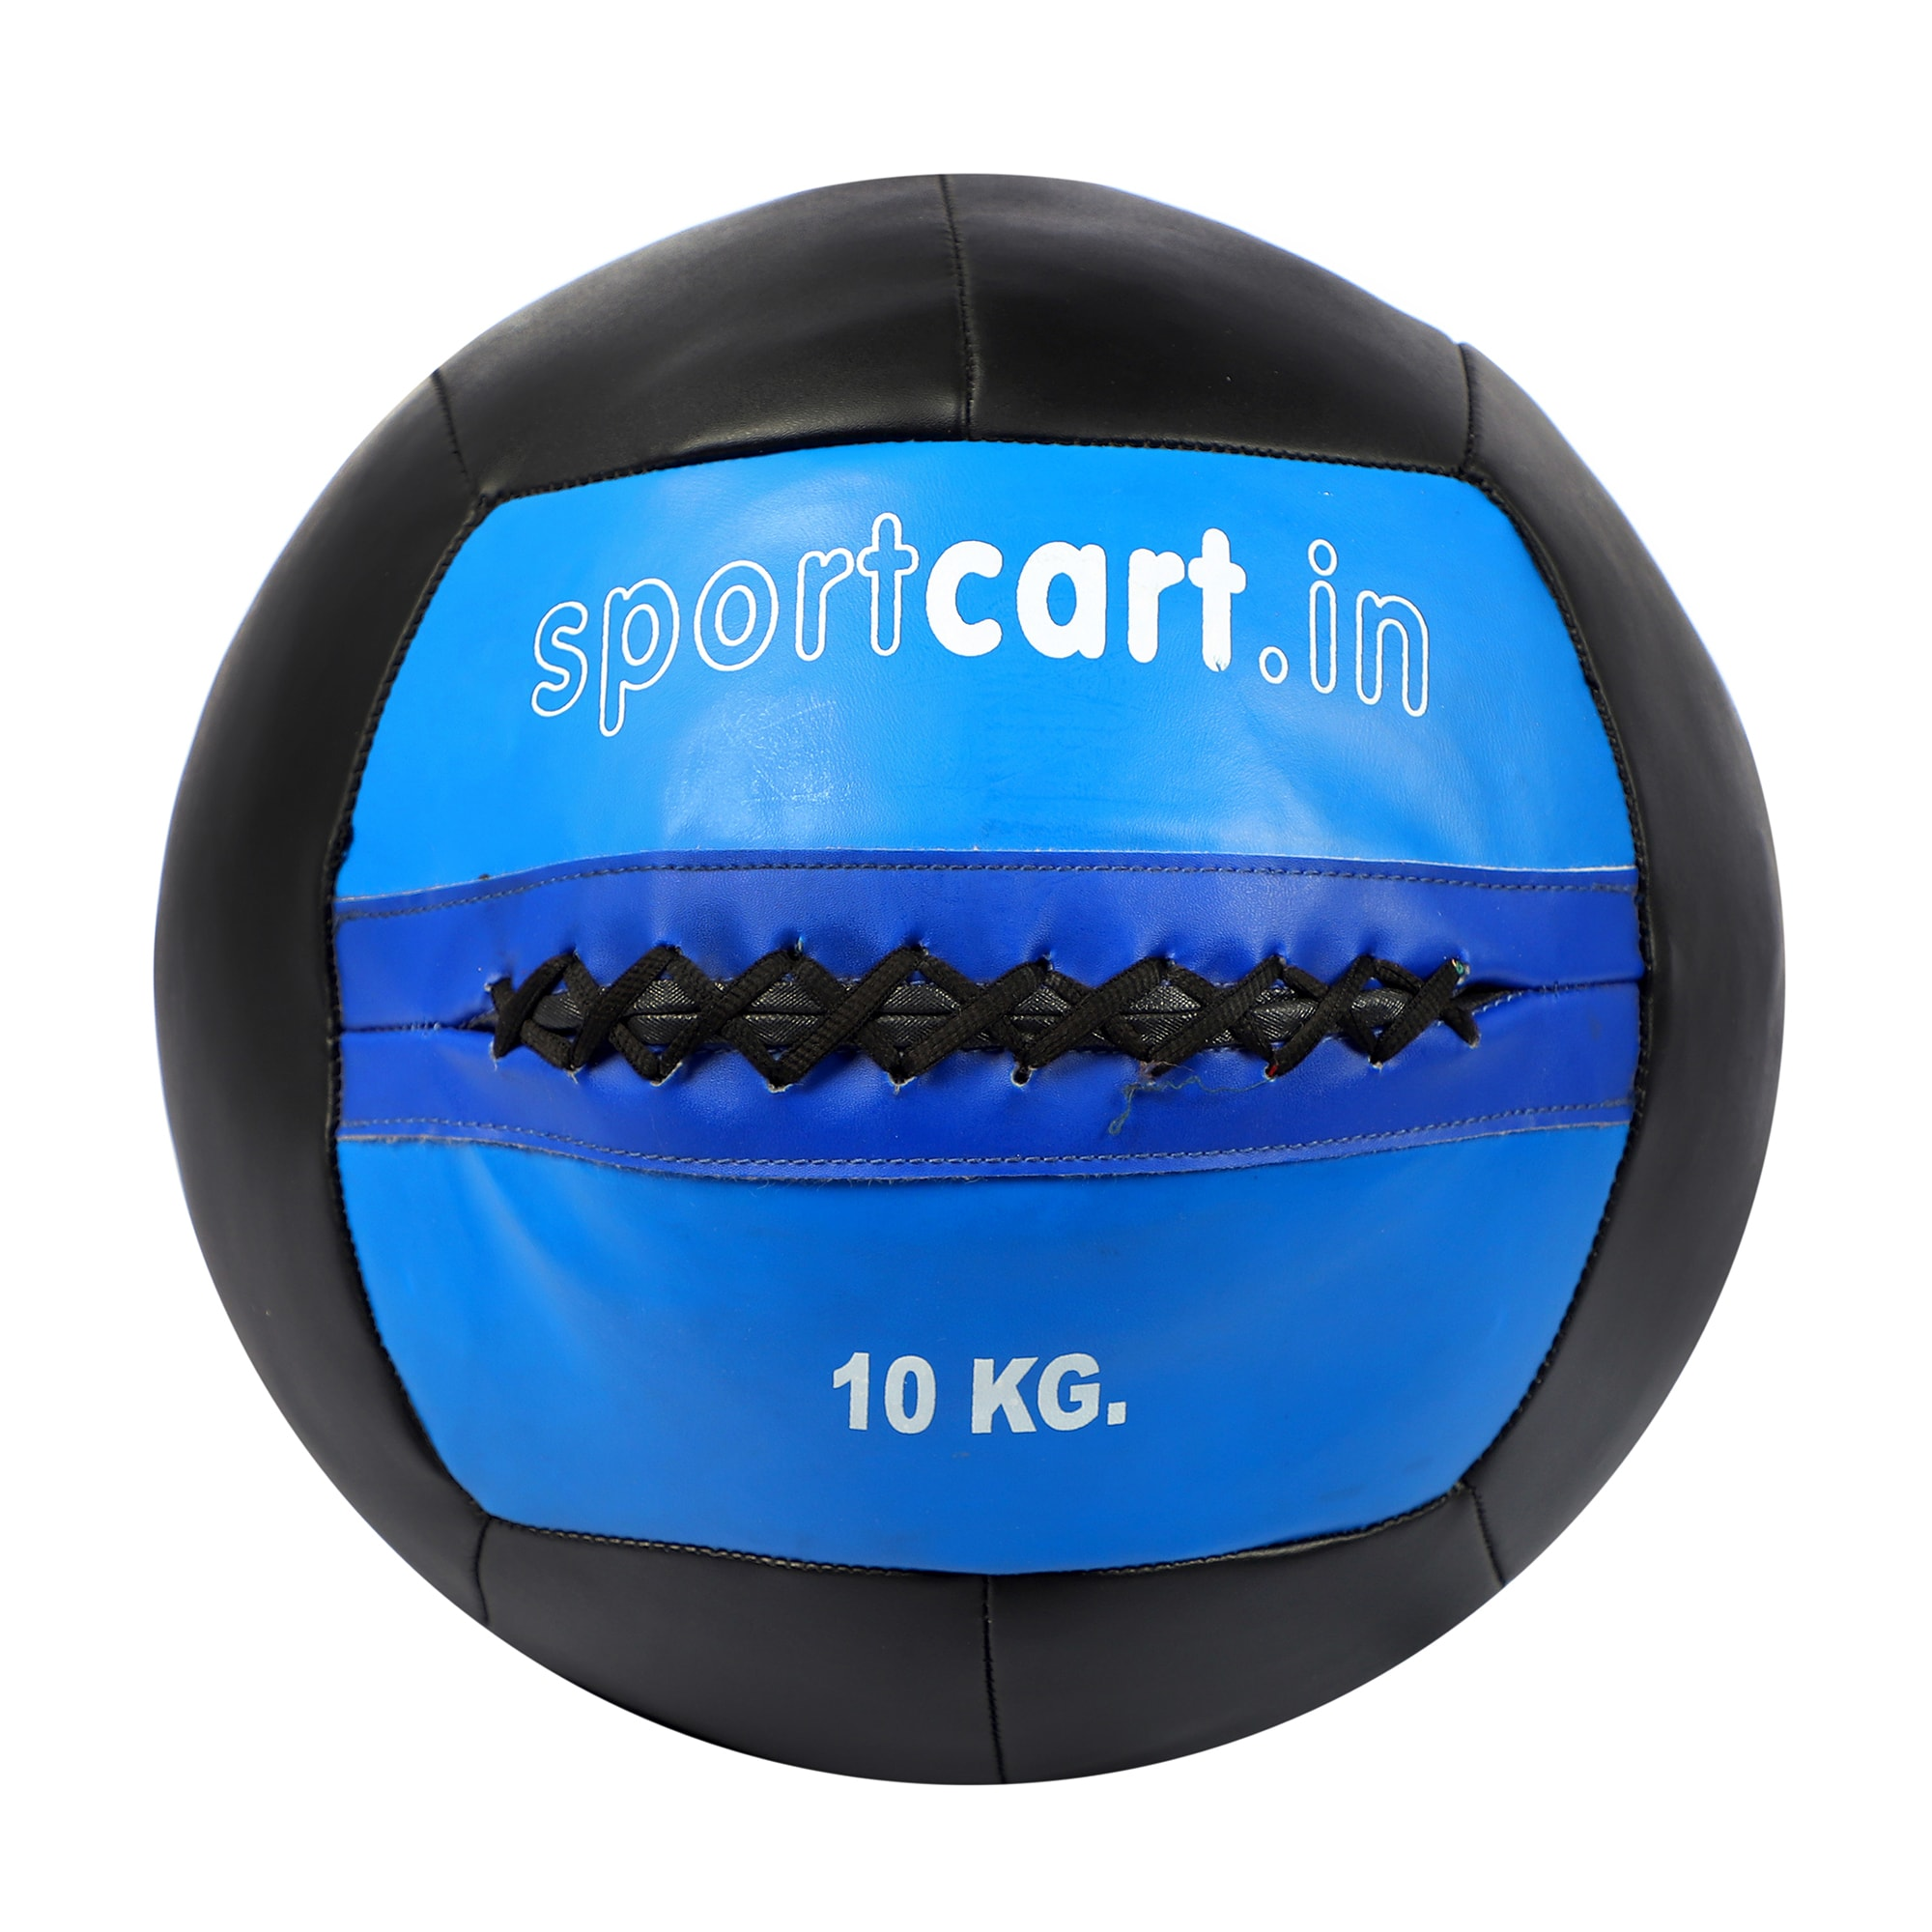 Sportcart.in Wall Ball